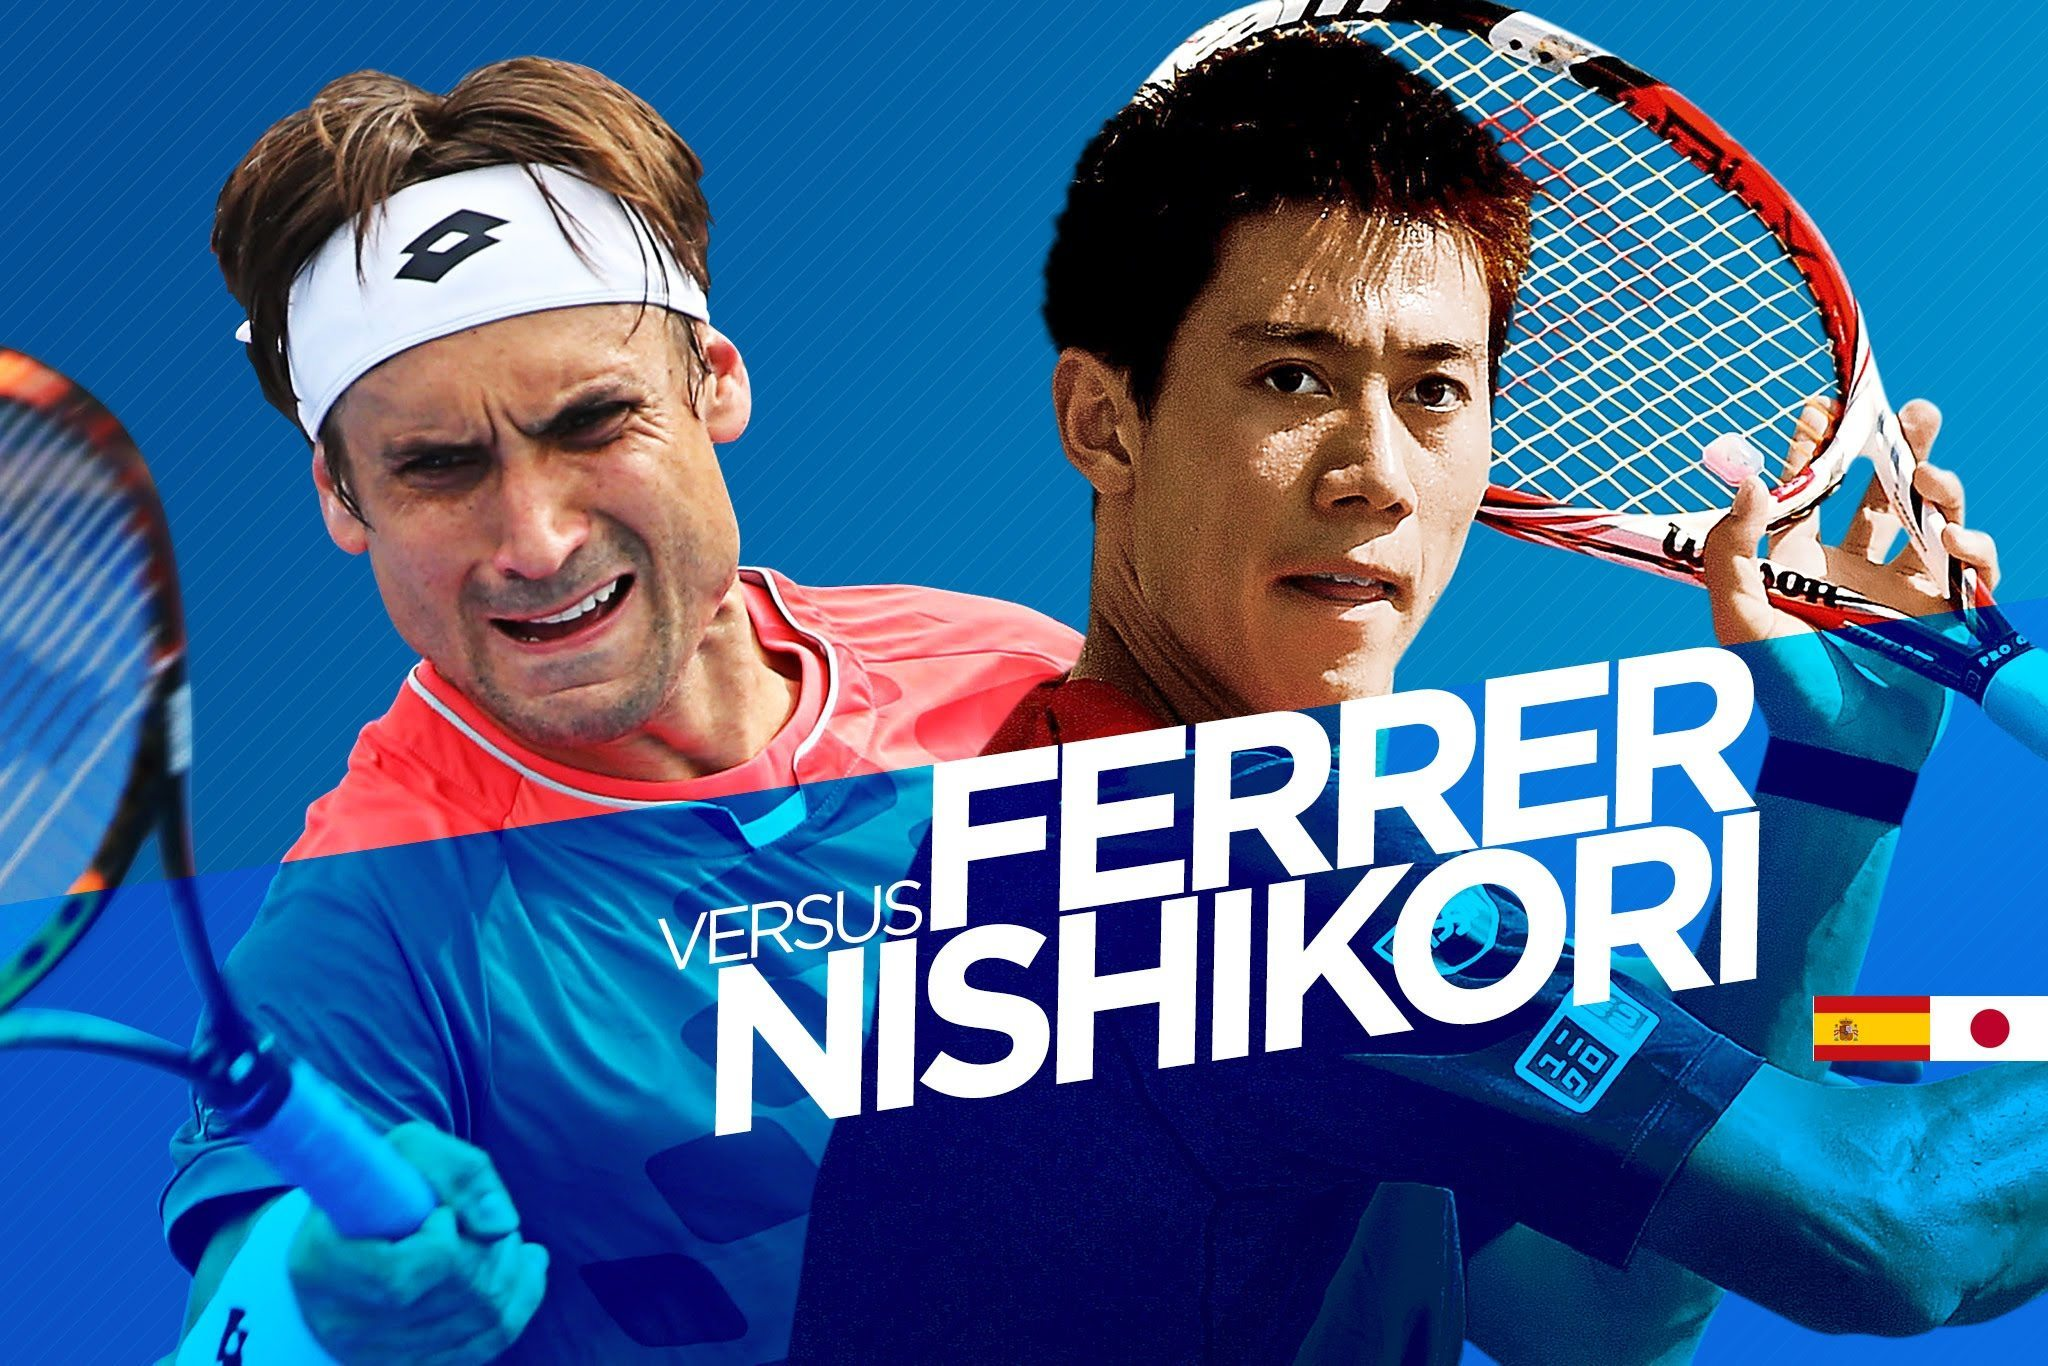 kei nishikori vs david ferrer 2015 barcelona open finals